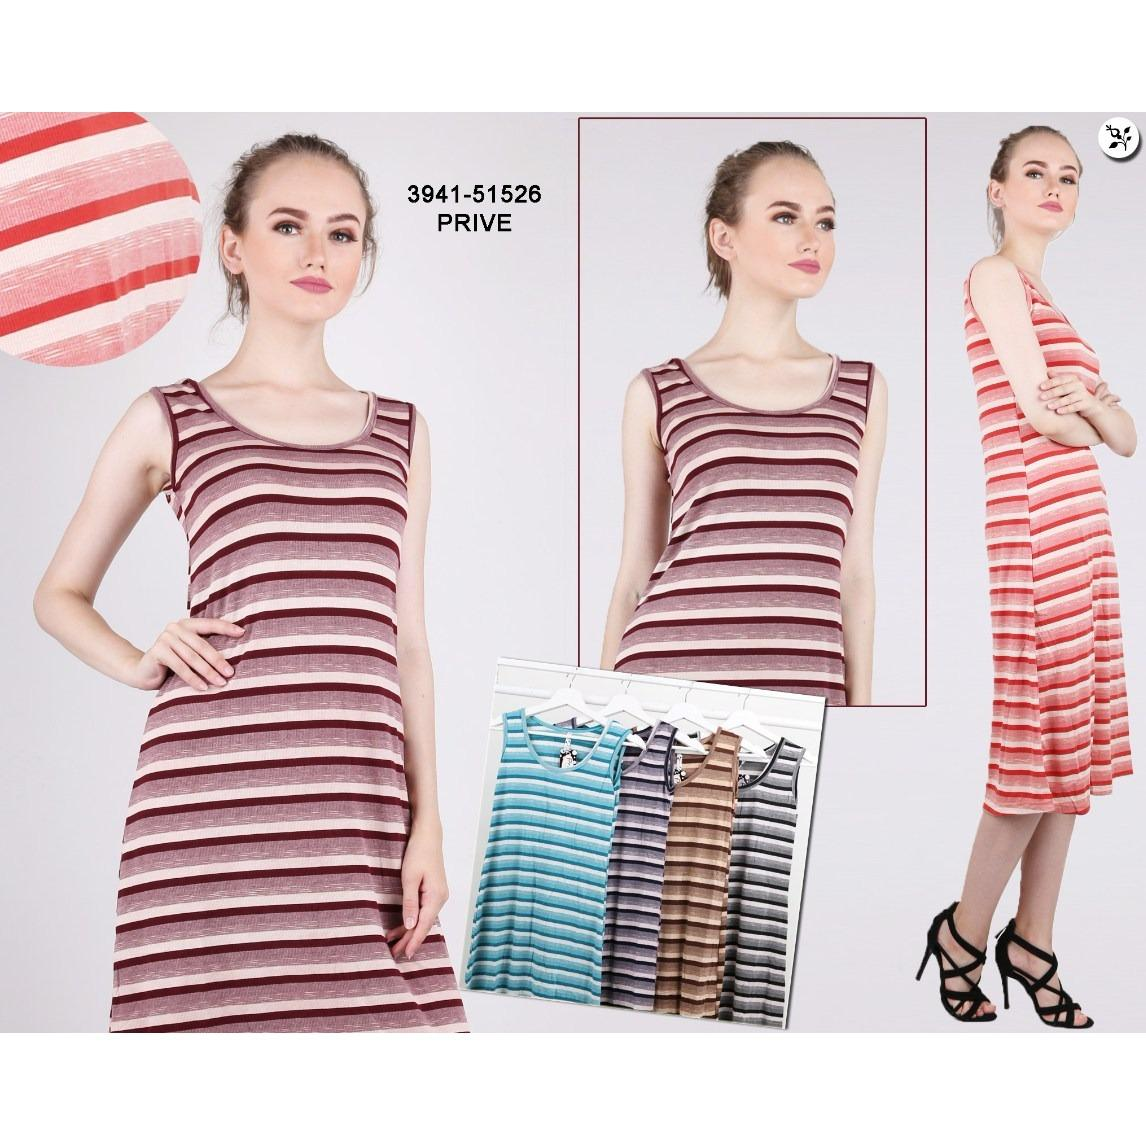 Oma Holley Fashion Tavisha Dress Midi Salur Tanpa Lengan - Size M